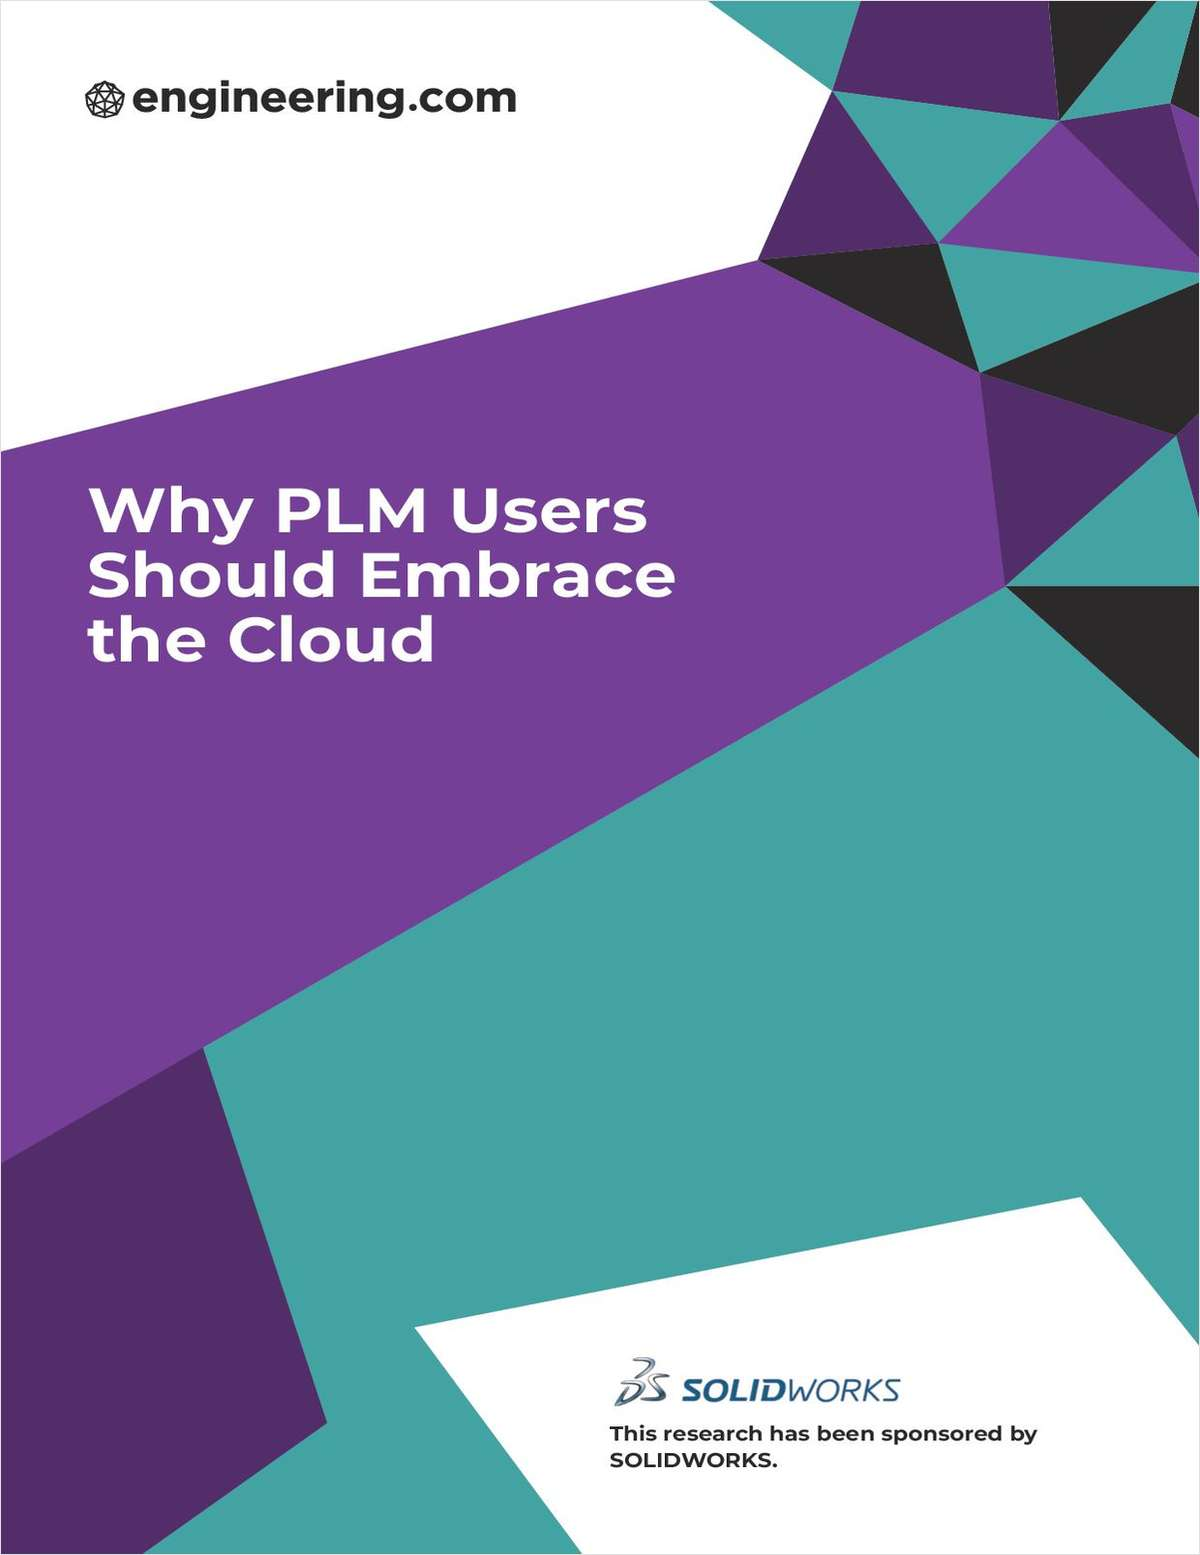 Why PLM Users Should Embrace the Cloud